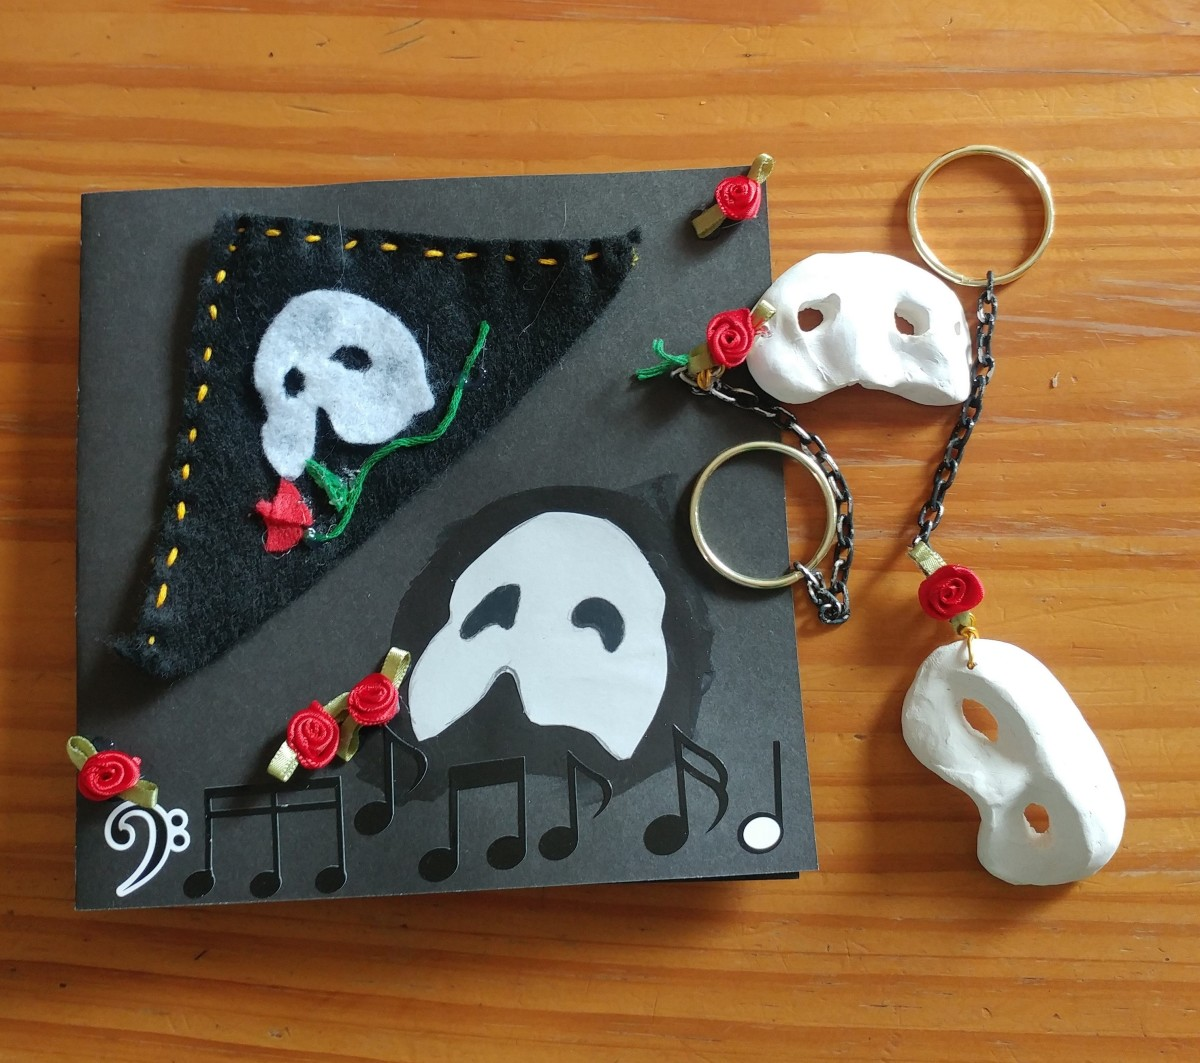 """The Phantom of the Opera"" Crafts: Keychain, Bookmark, Invitation Card"